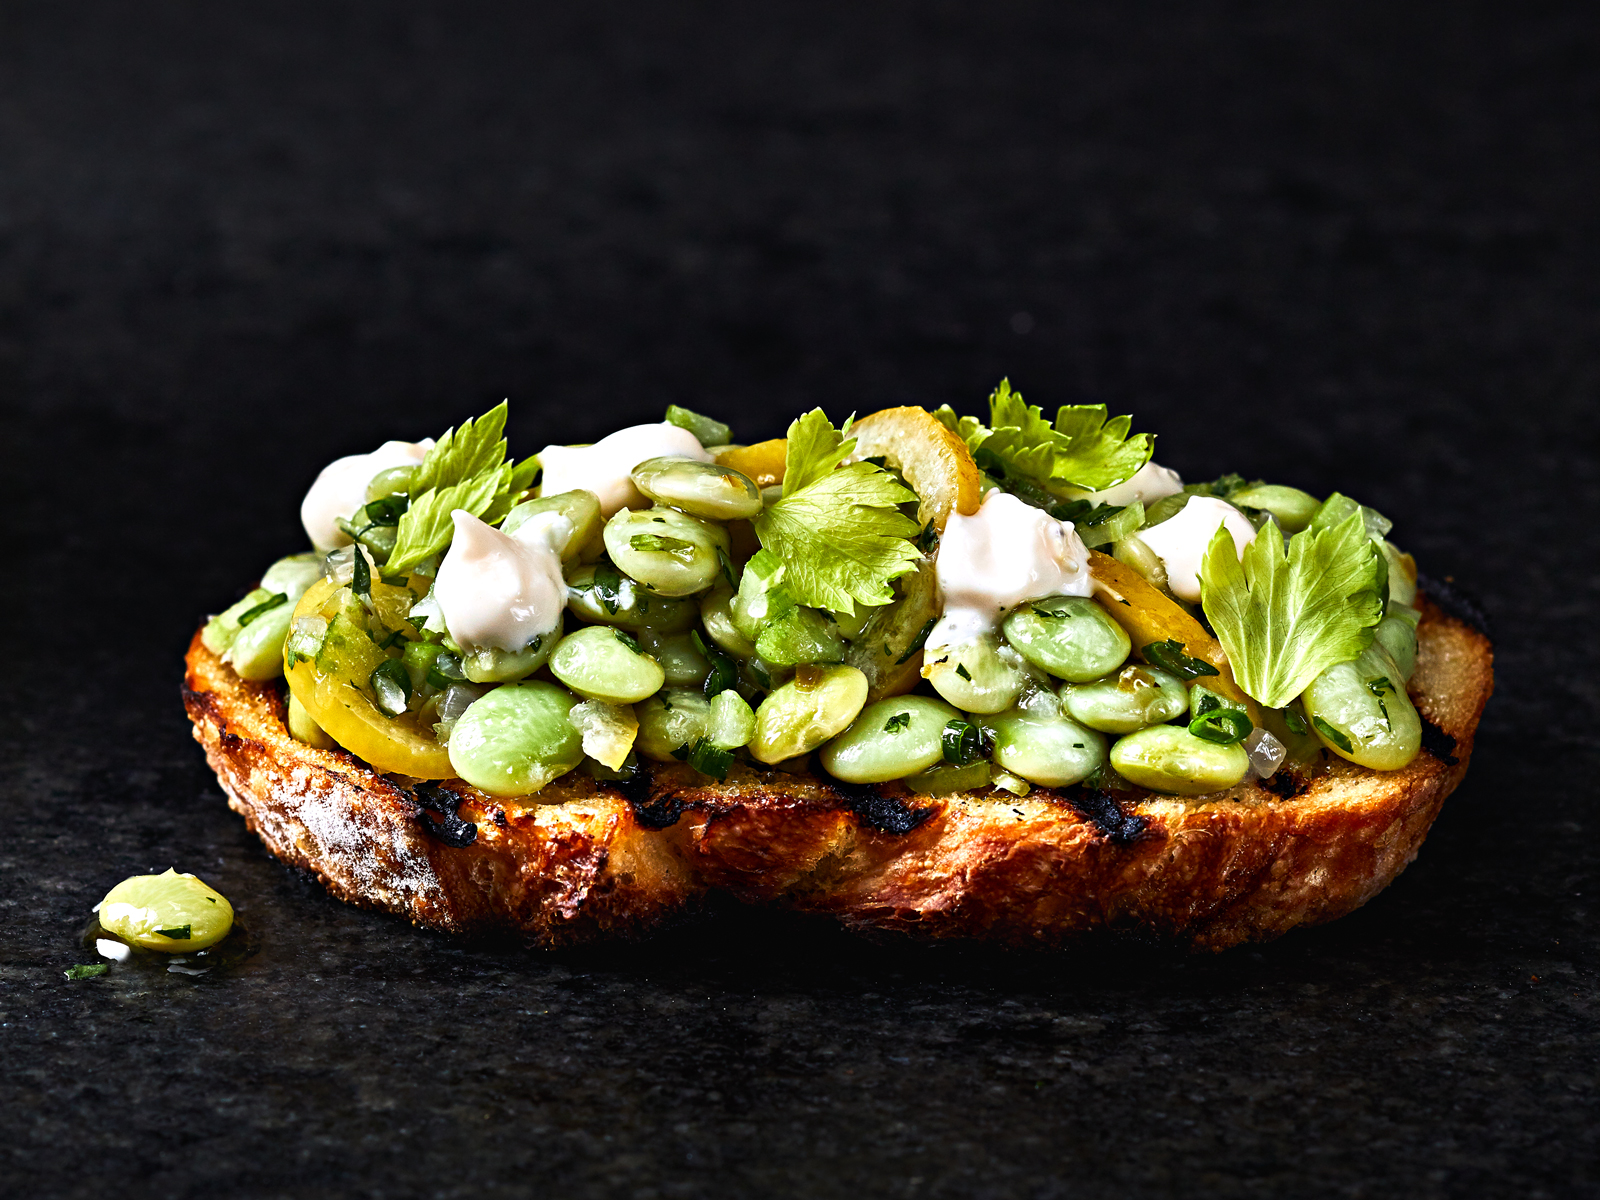 Garlic Toasts With Lemon Aioli And Marinated Beans Recipe Liz Mervosh Food Wine